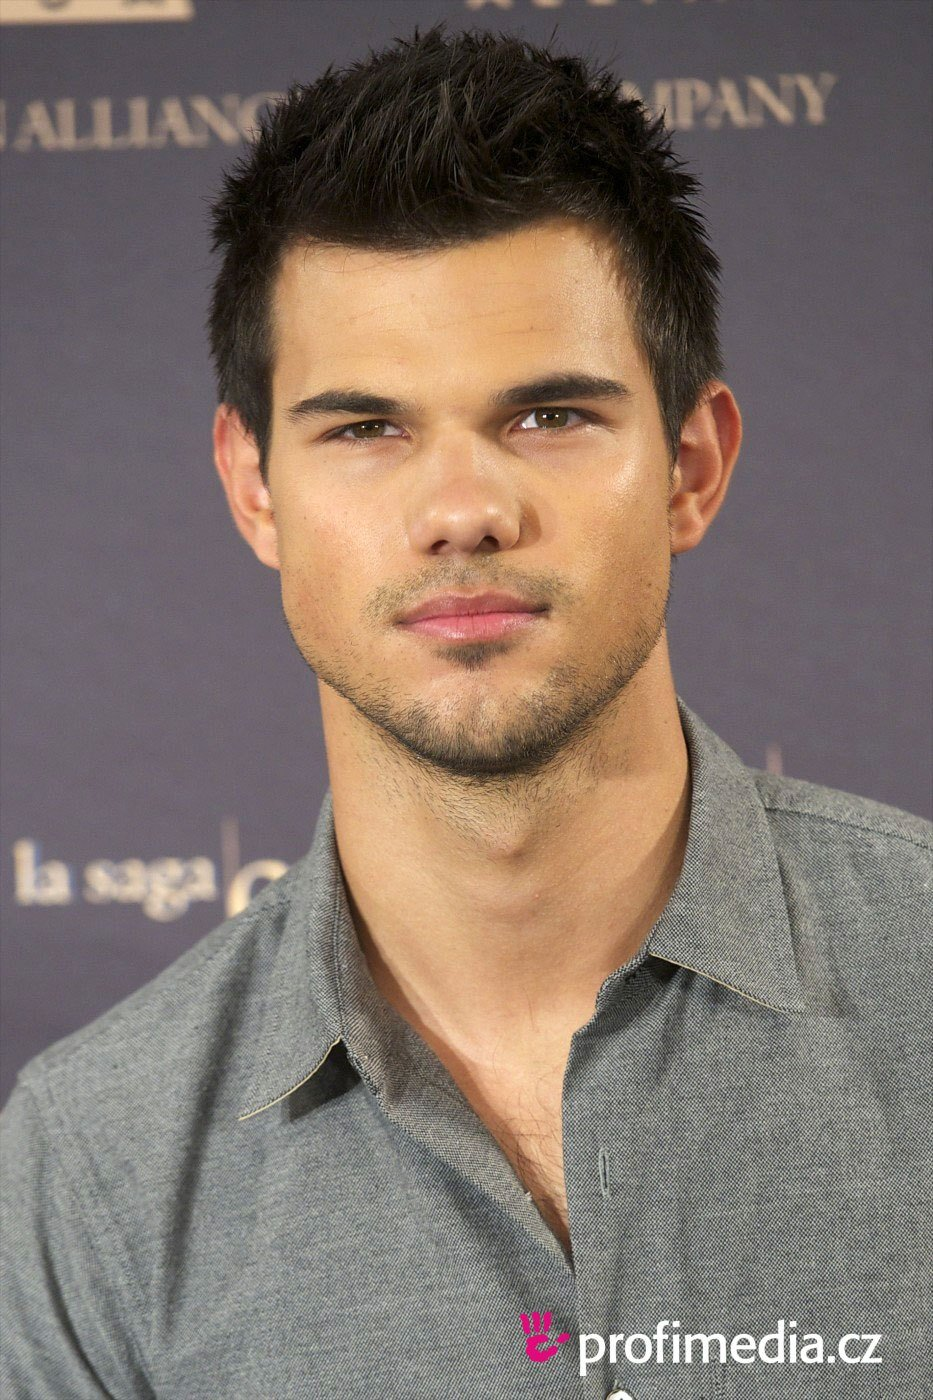 The Best Taylor Lautner Hairstyle Easyhairstyler Pictures